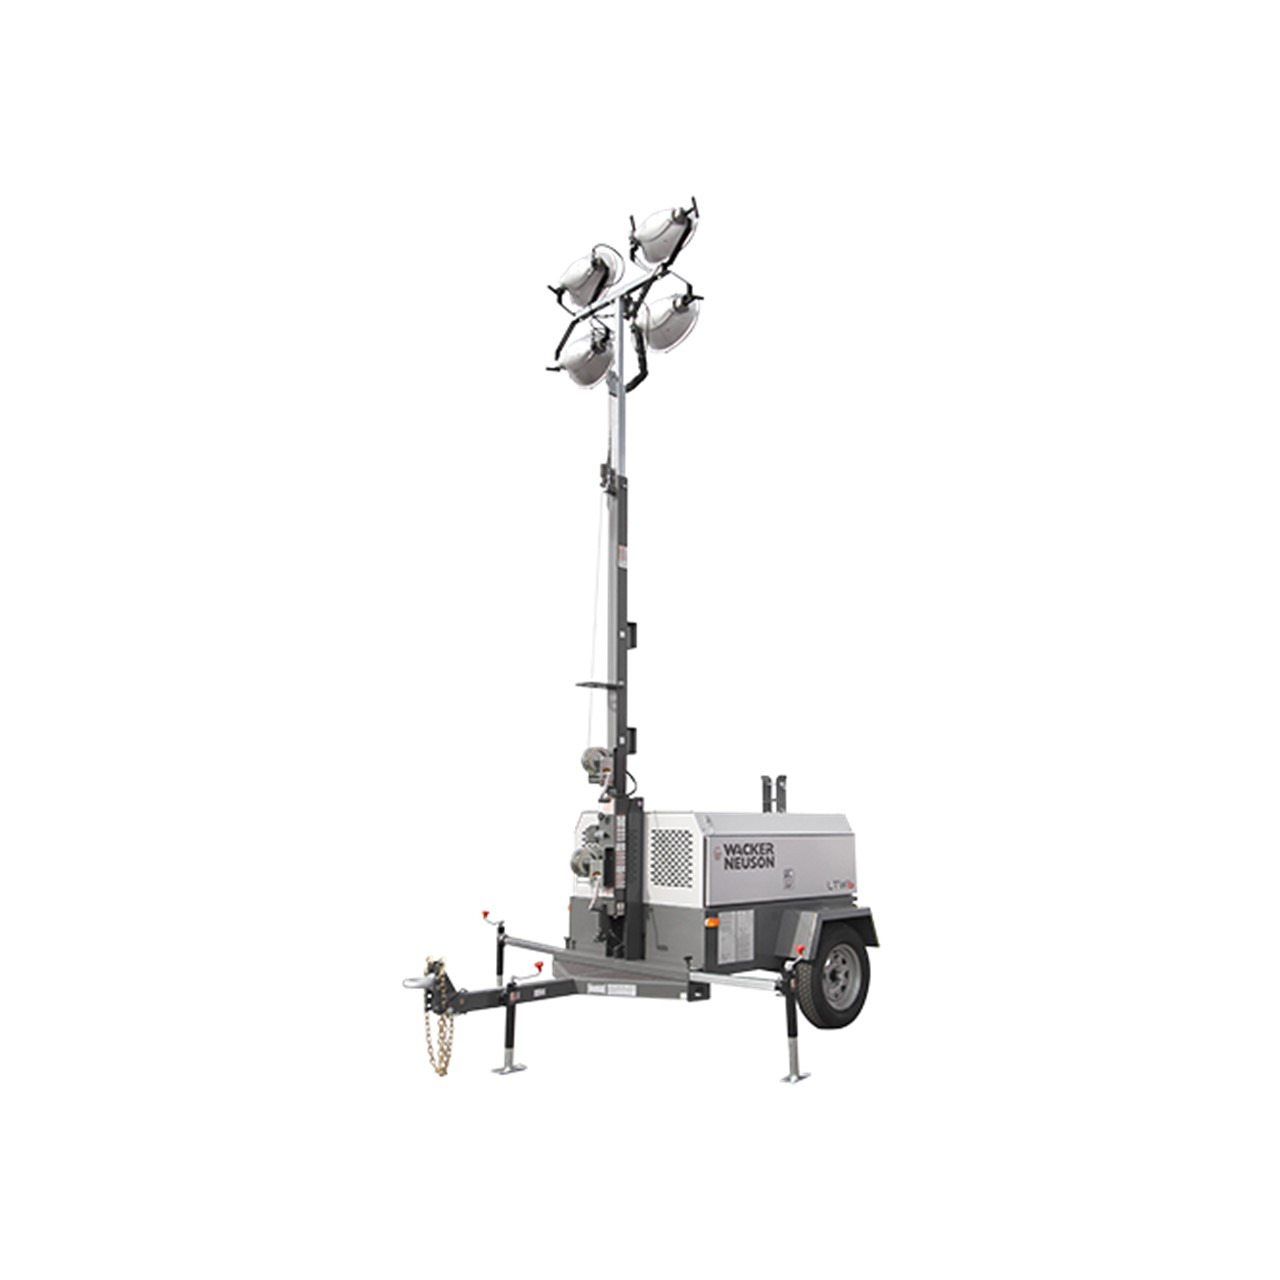 Wide Body, Vertical Mast Lighting Towers